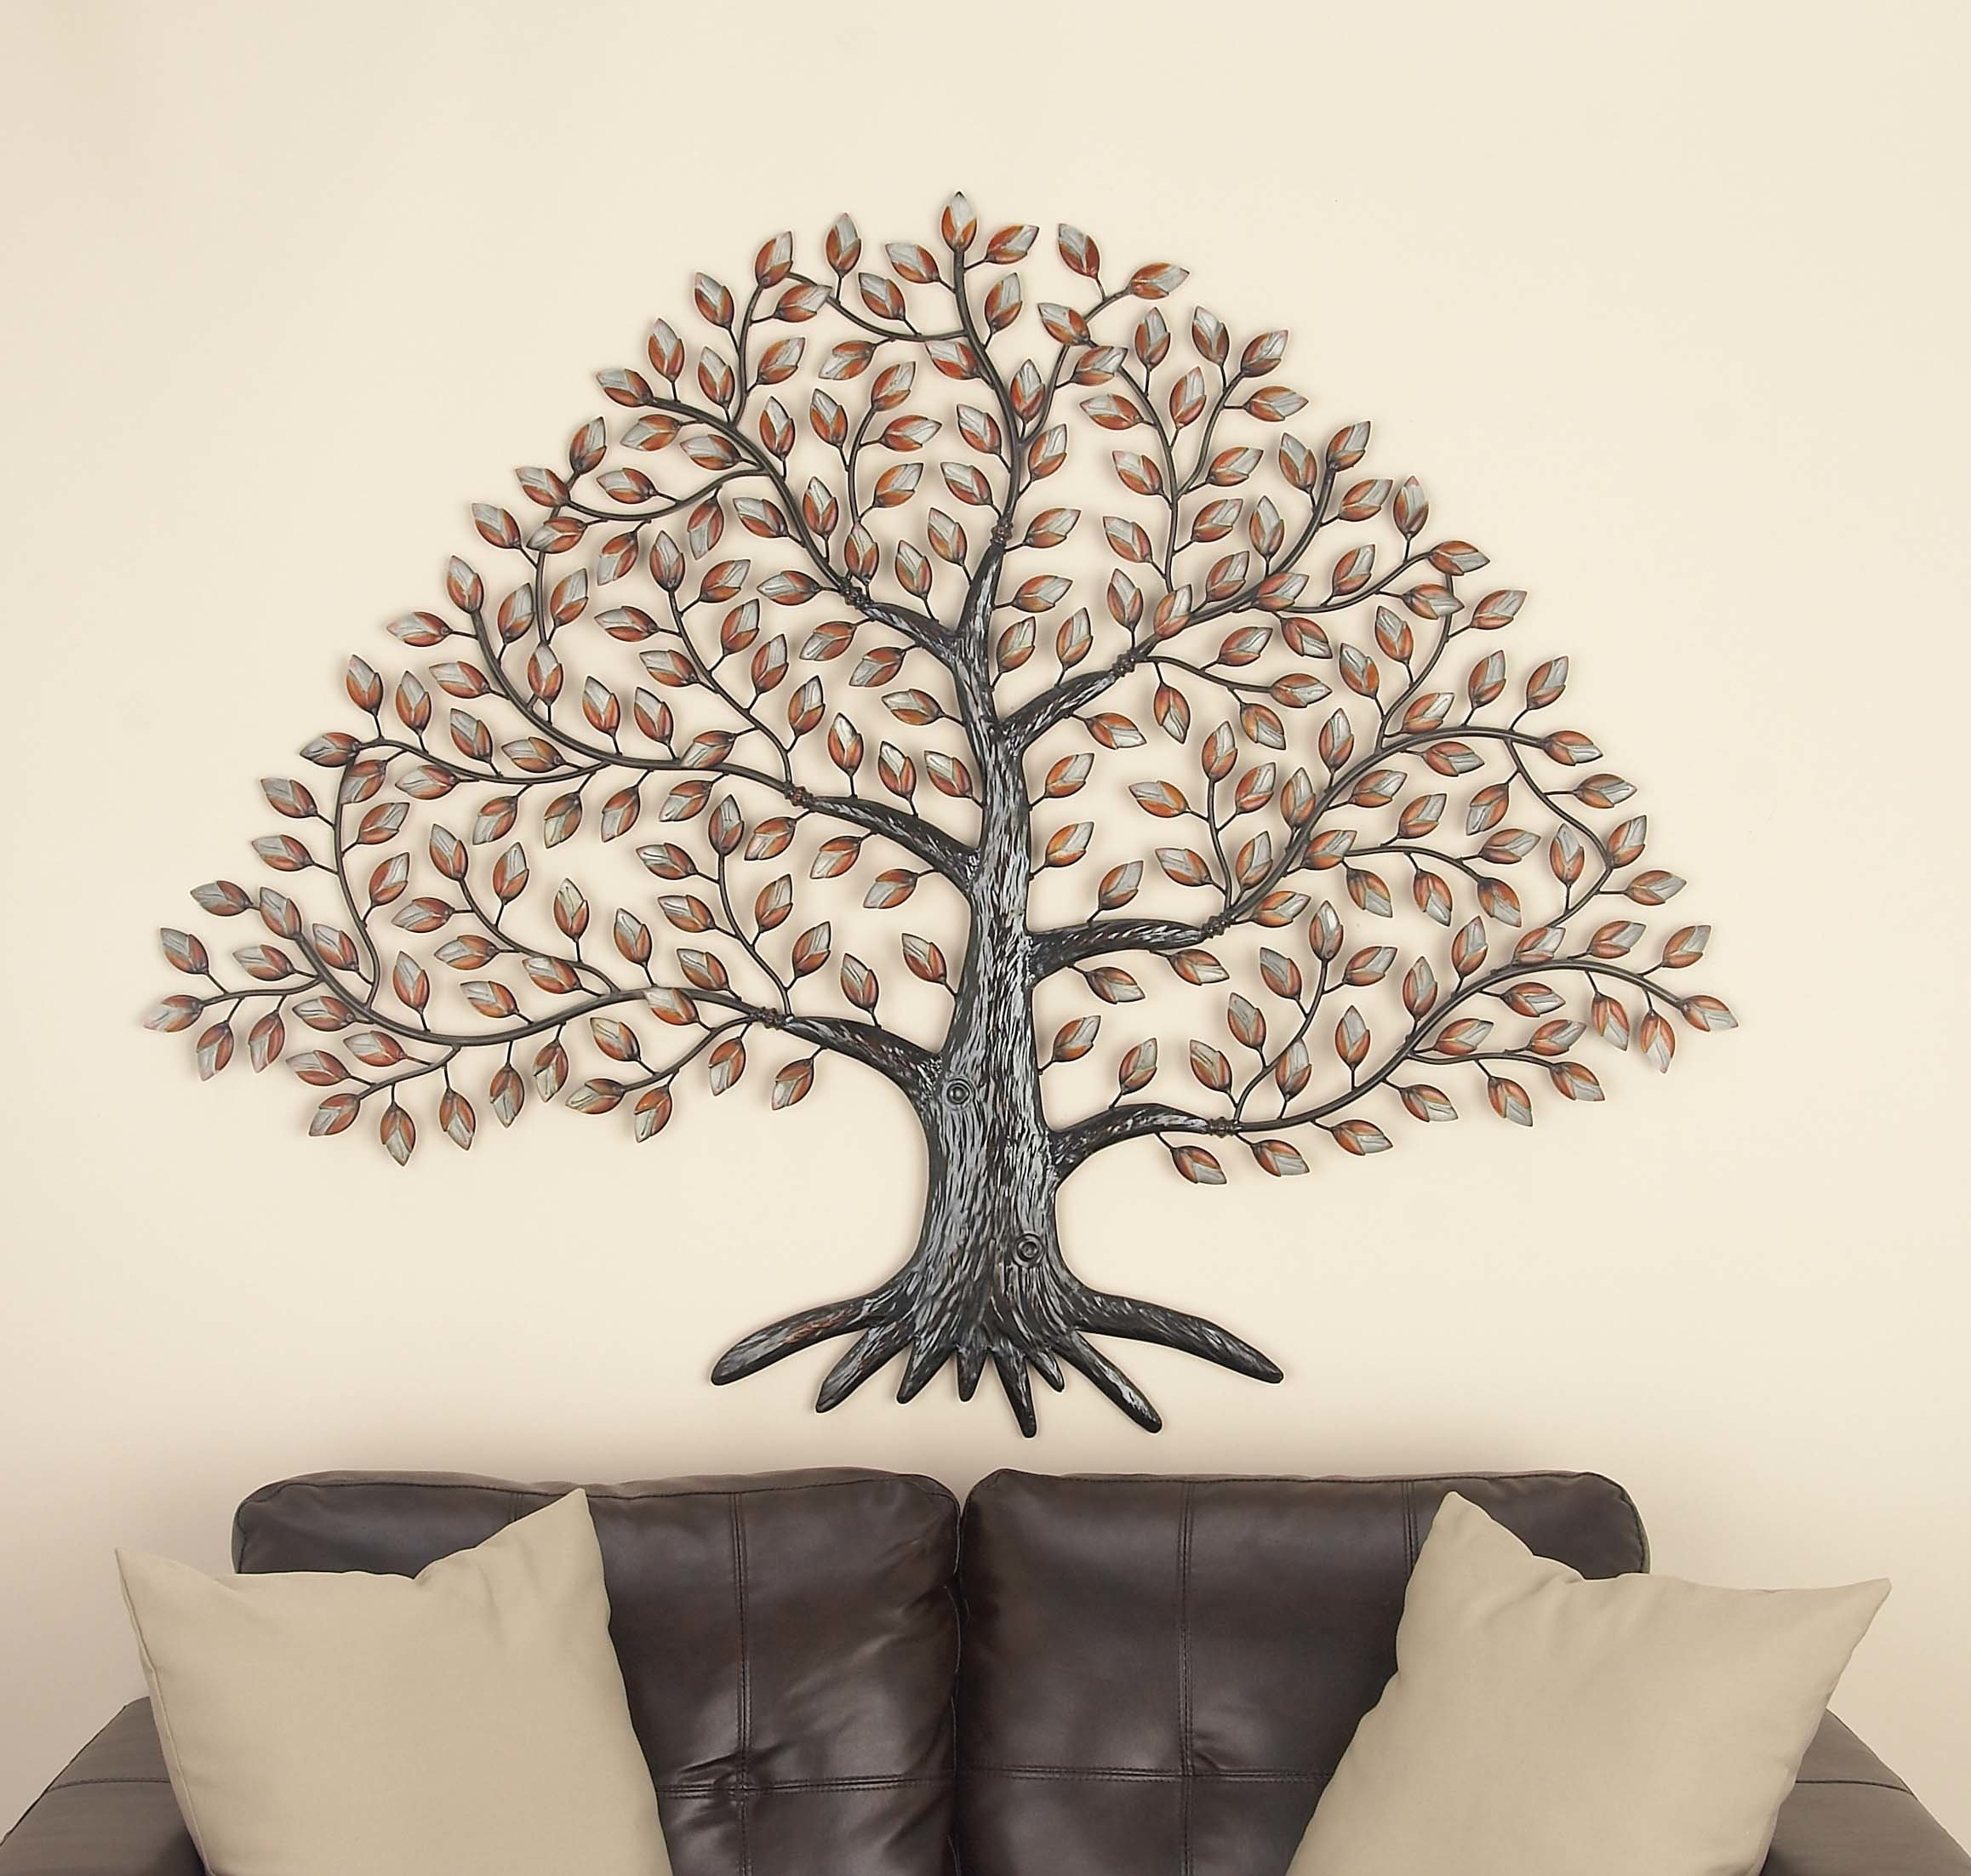 Windswept Tree Wall Decor | Wayfair Within Windswept Tree Wall Decor By World Menagerie (View 17 of 30)